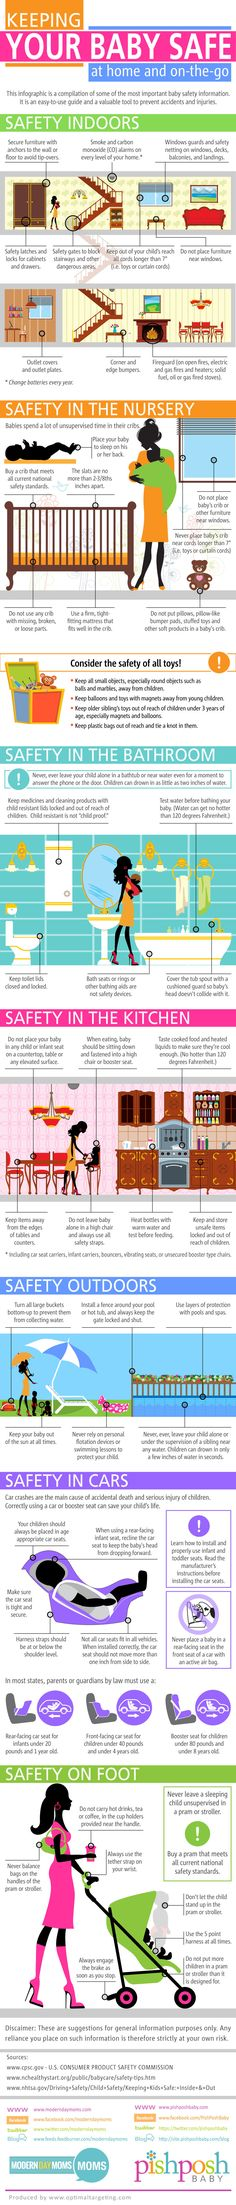 Keeping Your Baby Safe [infographic] http://site.pishposhbaby.com/blog/2013/05/07/keeping-your-baby-safe/